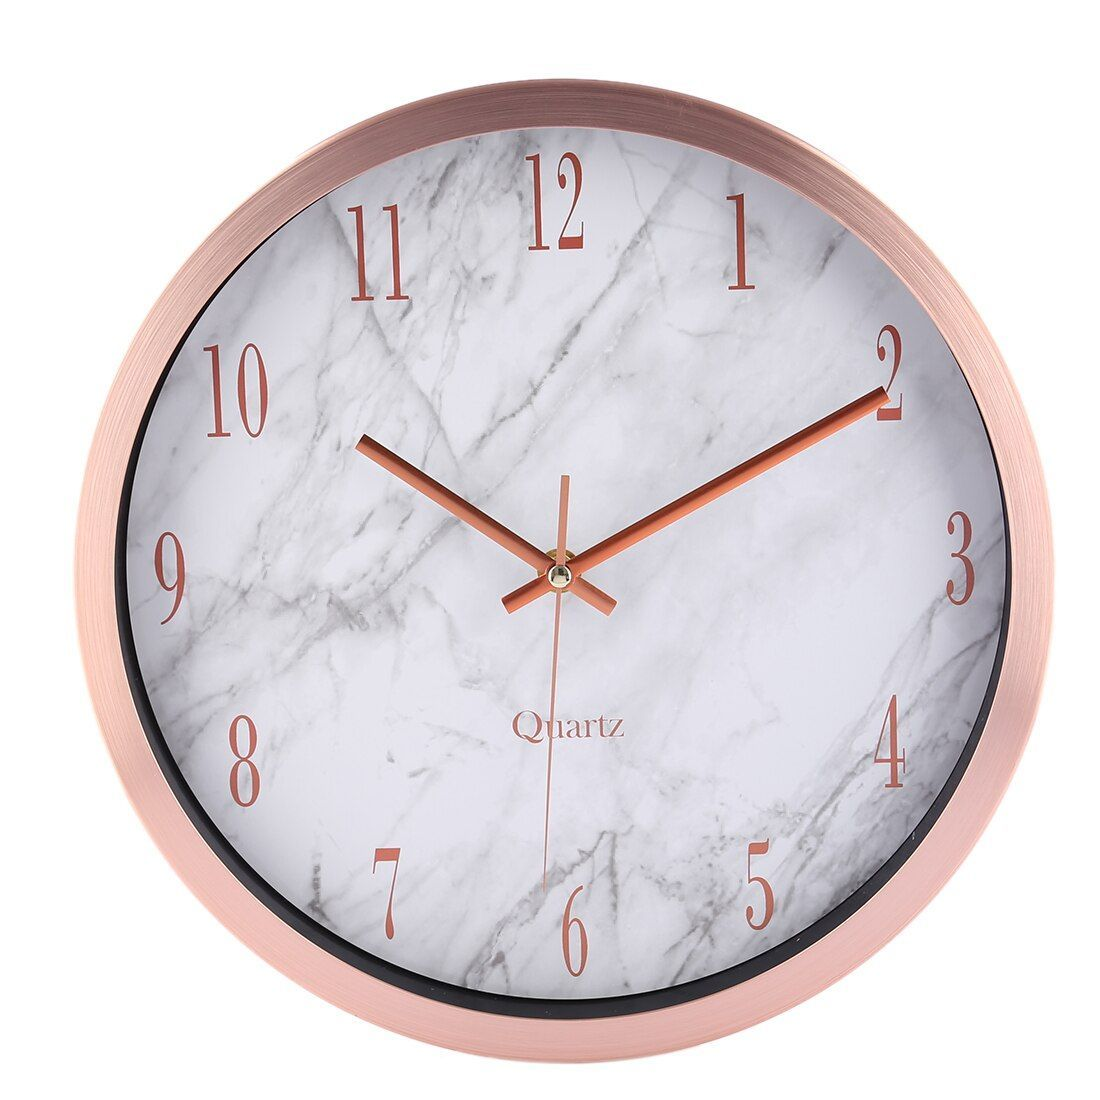 12 Inch Watch Wall Clocks Silente Round Marbling Household Office Livingroom Mute Hanging Clo In 2020 Room Decor Bedroom Rose Gold Gold Room Decor Rose Gold Room Decor